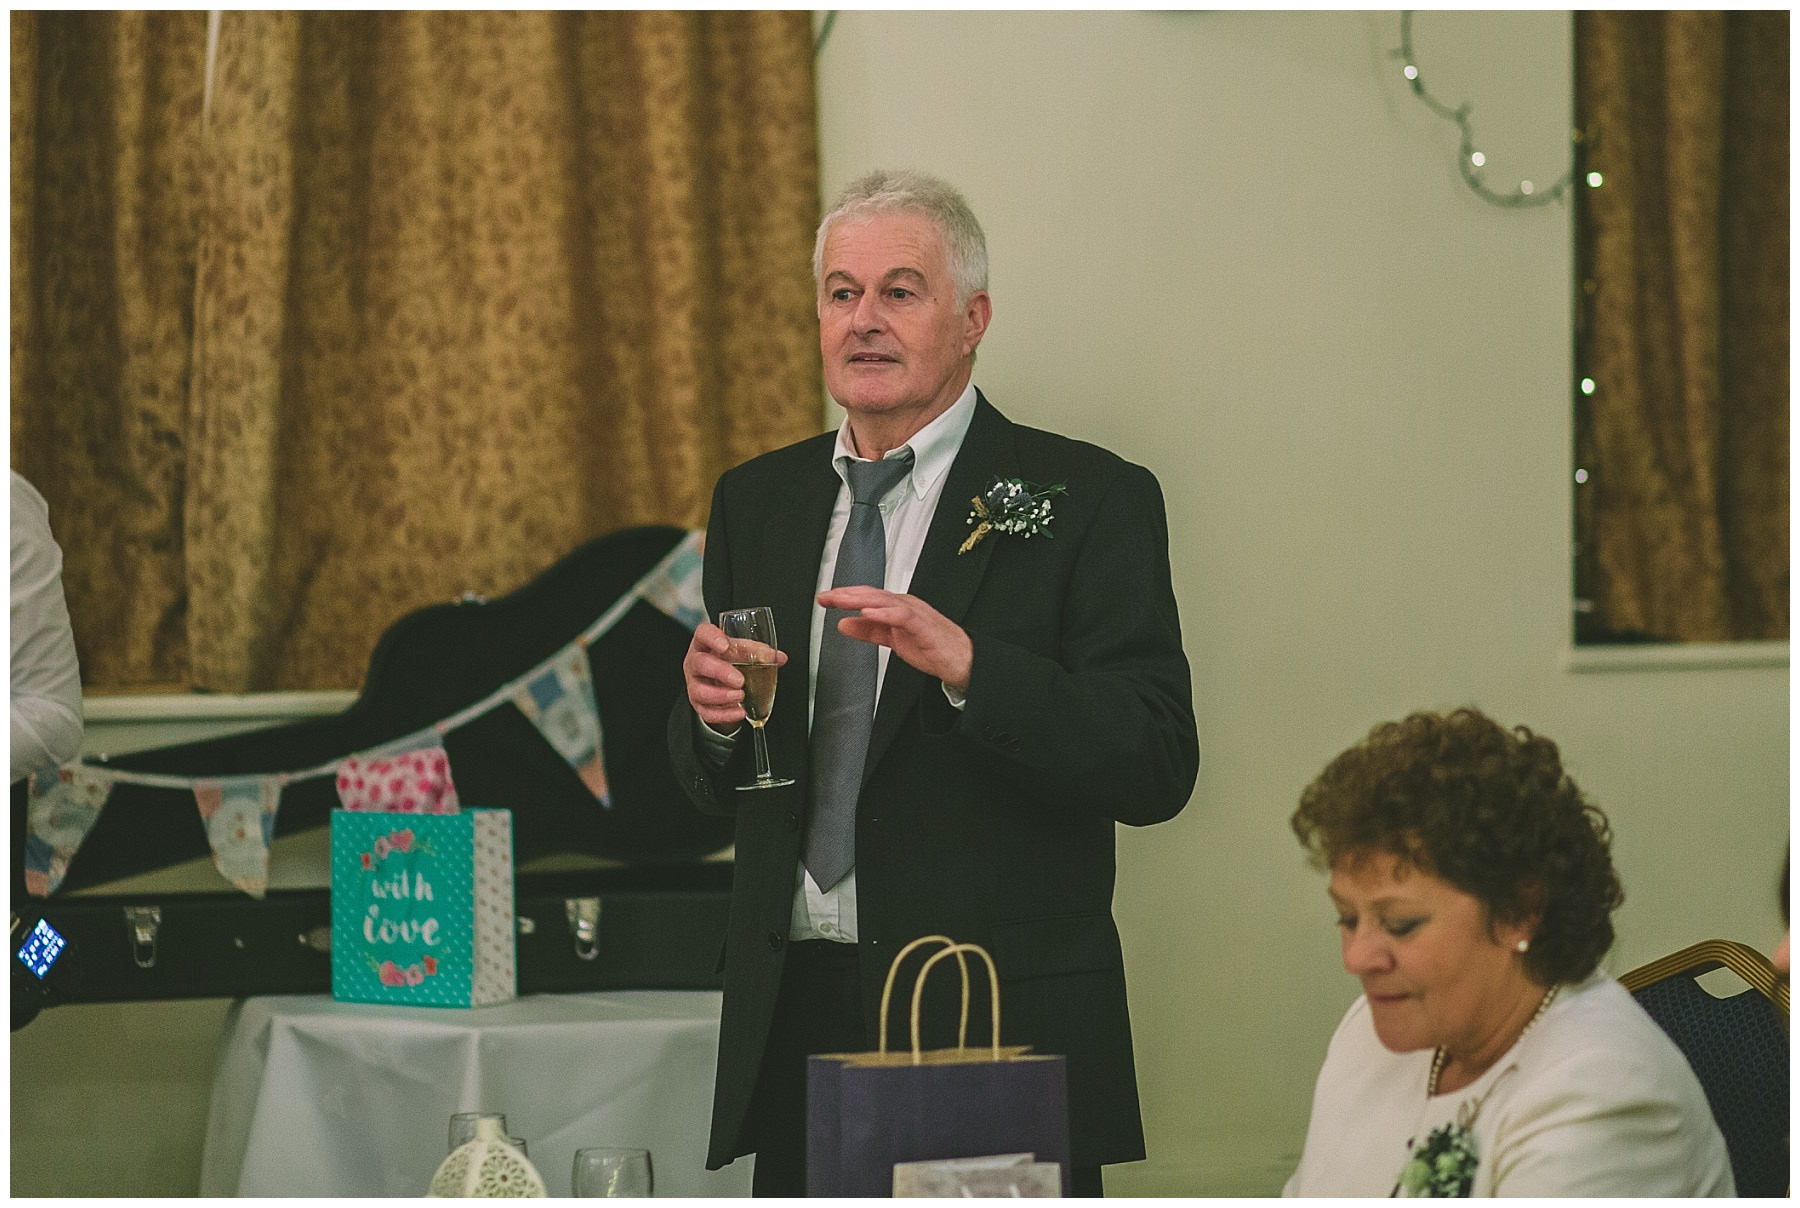 Father of the bride gives a speech at Ramsbottom Civic Hall